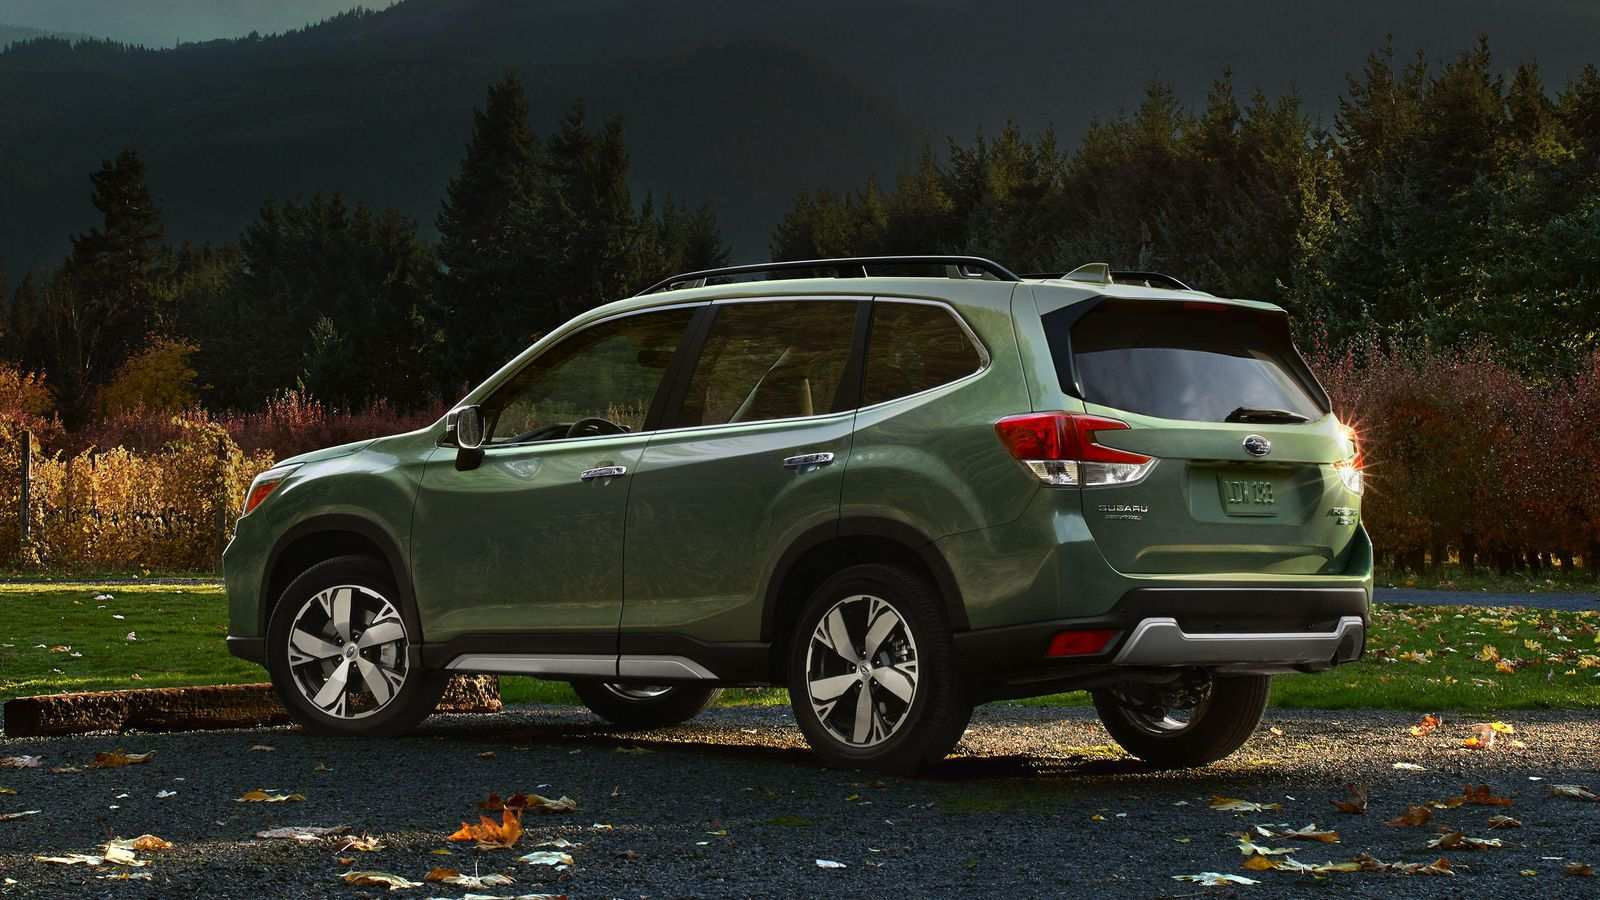 76 The Best Dimensions Of 2019 Subaru Forester Release